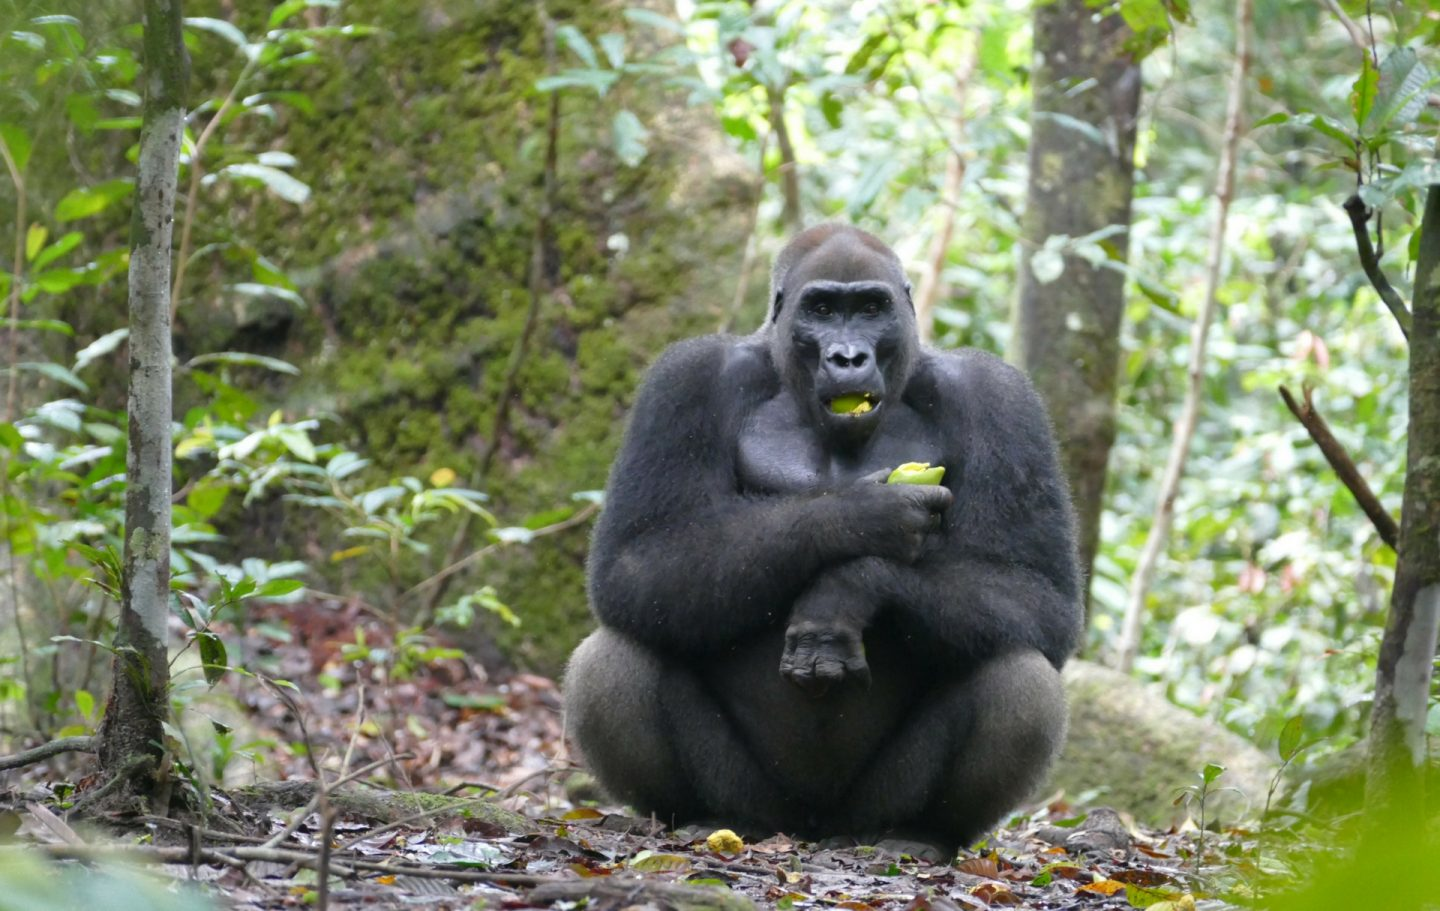 Tusk Trust - The Loango Gorilla Project.